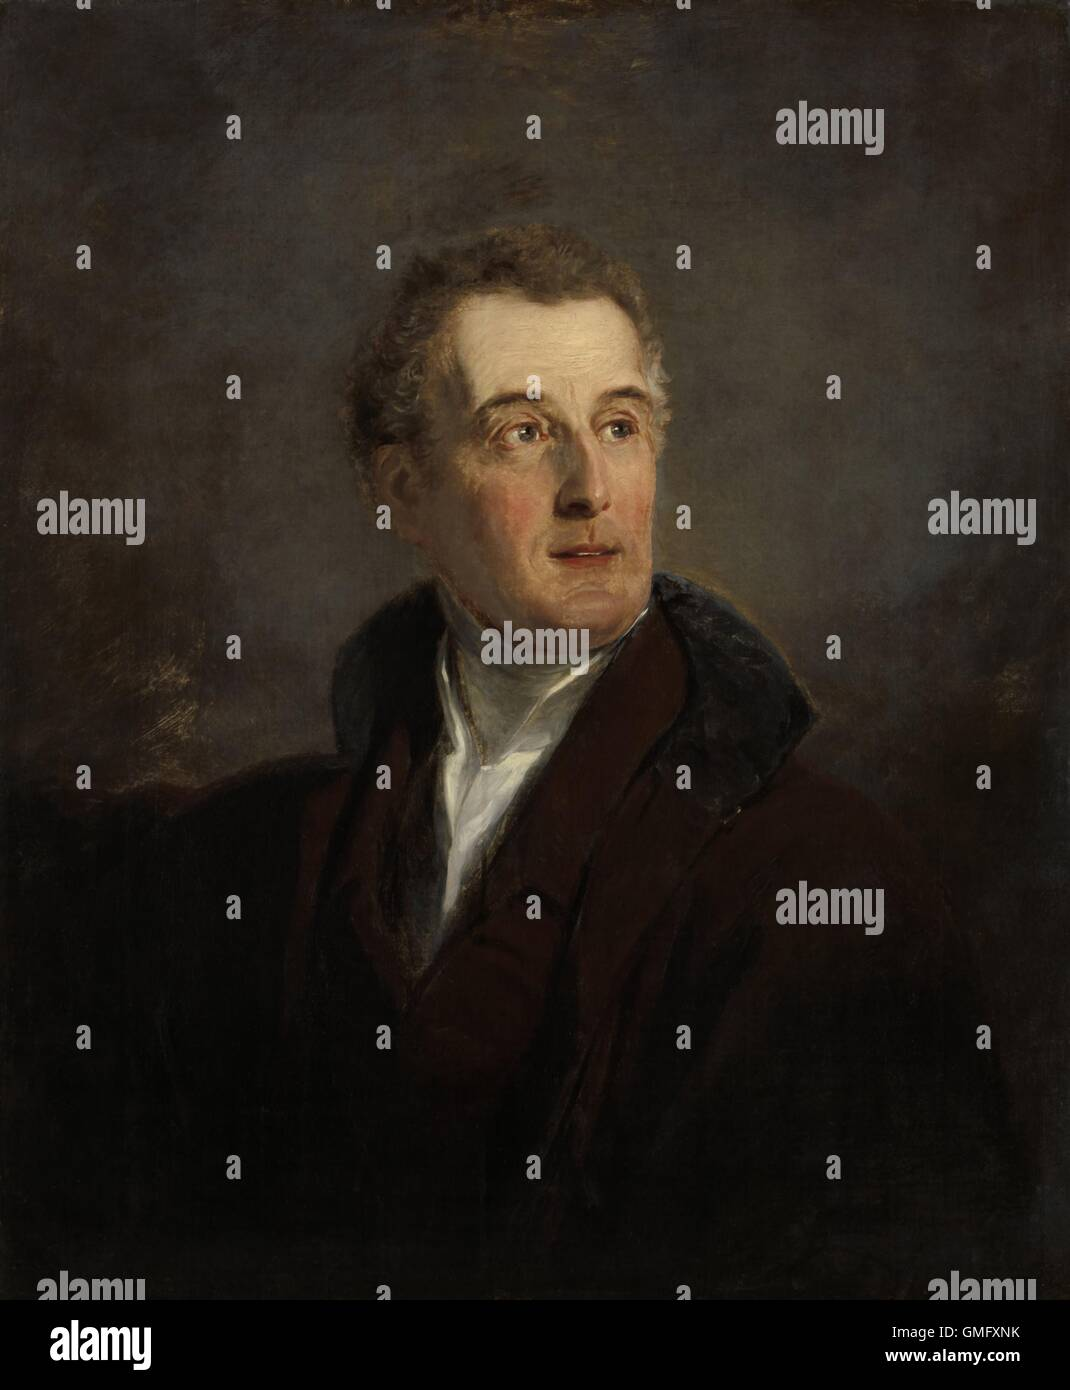 Portrait Study of Arthur Wellesley, Duke of Wellington, by Jan Willem Pieneman, 1821, Dutch painting, oil on canvas. - Stock Image